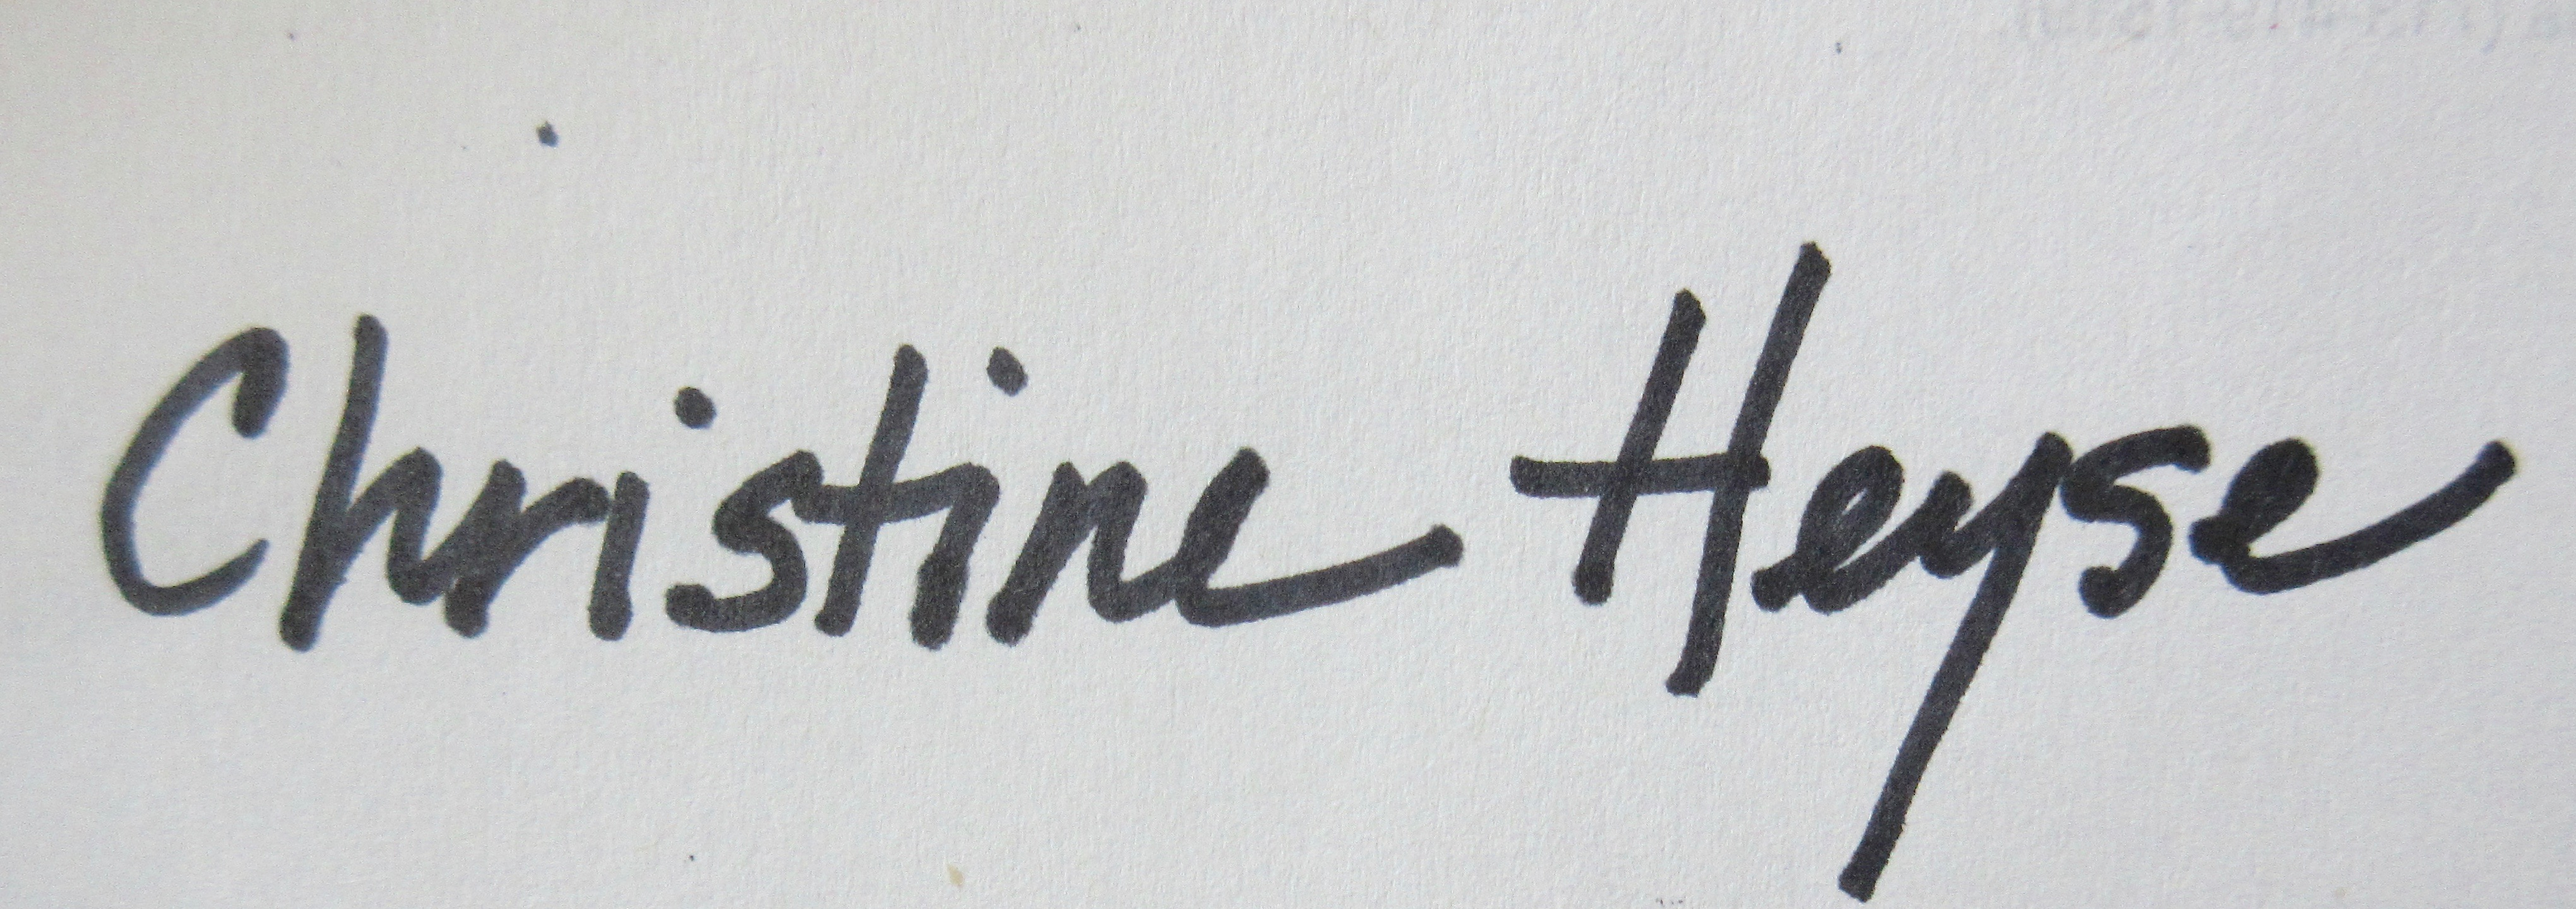 Christine Heyse's Signature